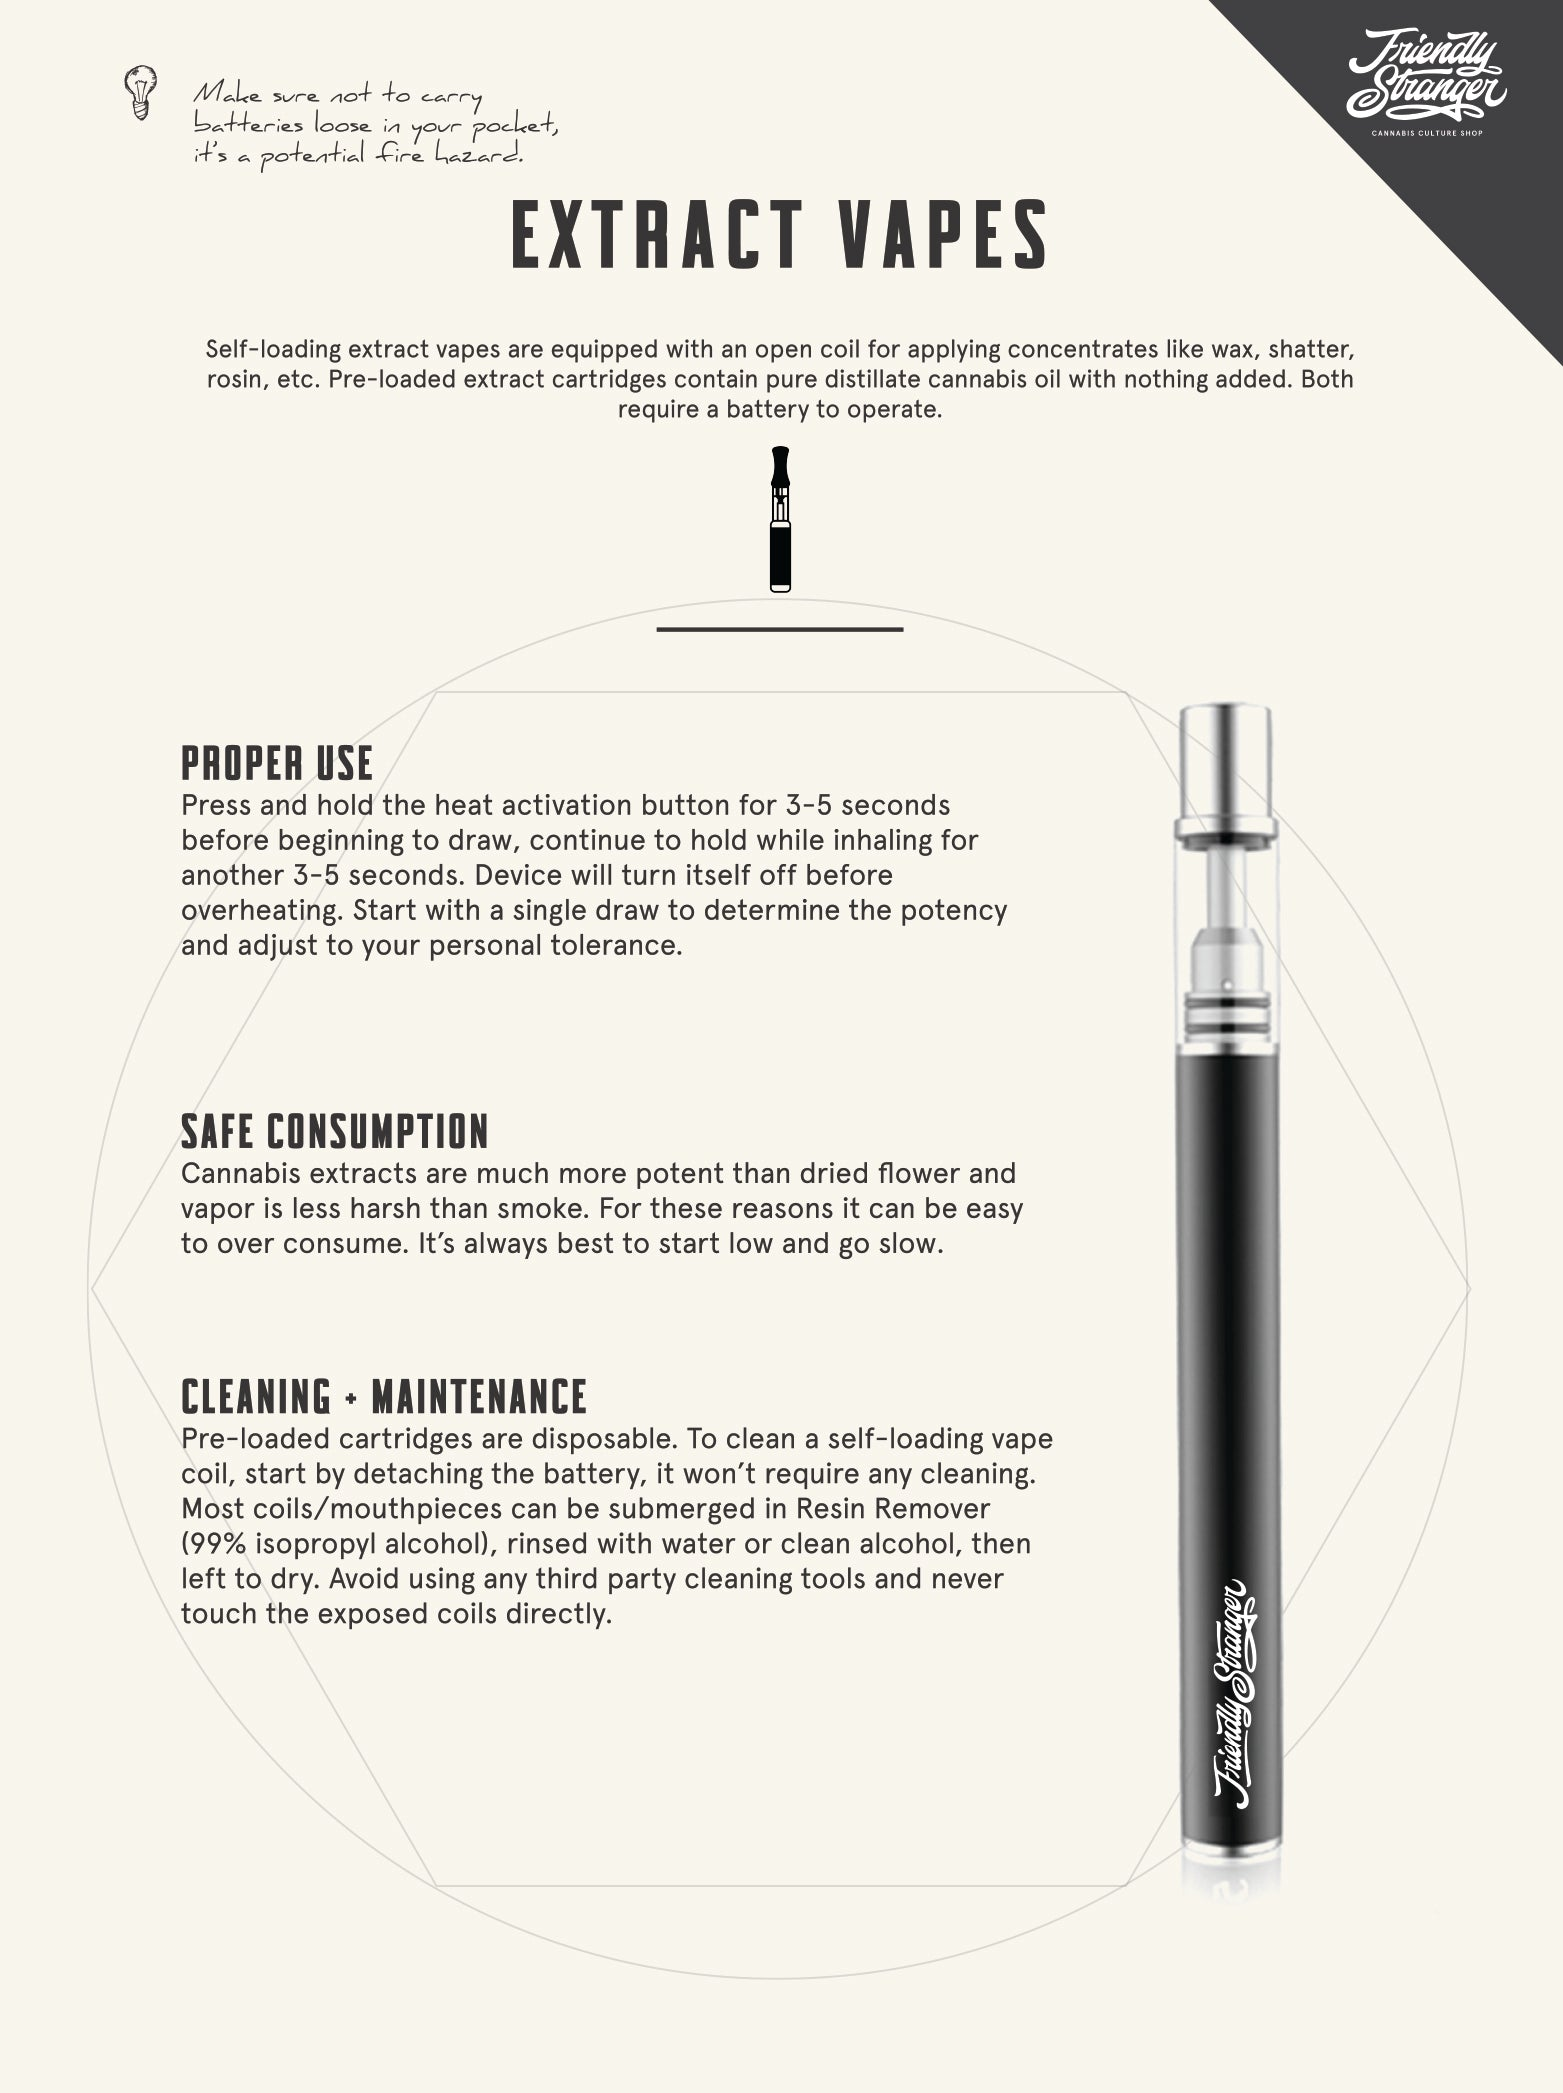 Extract Vapes Education